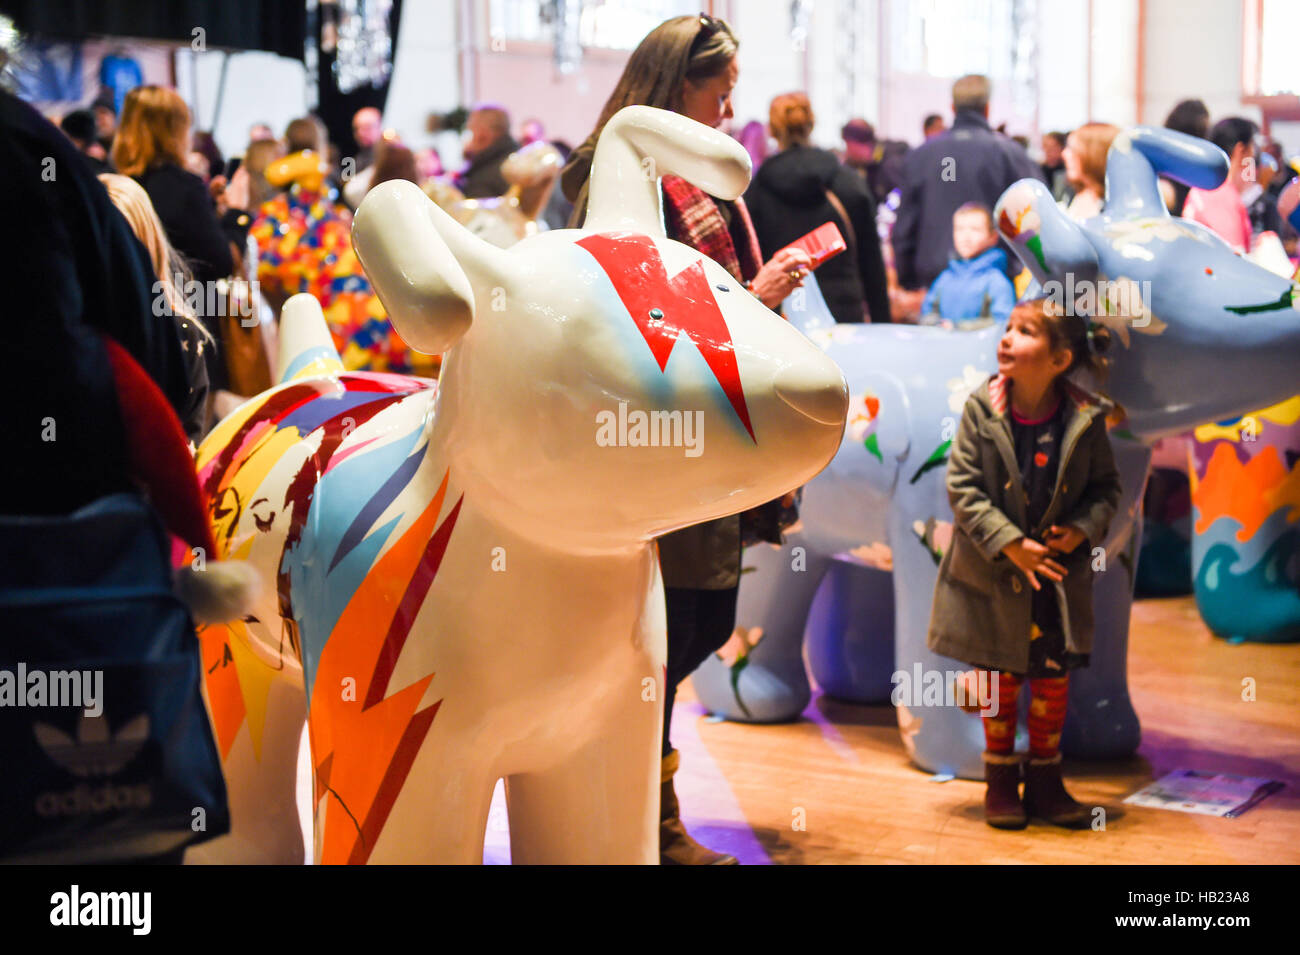 Brighton Sussex, UK. 4th Dec, 2016. Thousands of people are viewing the Snowdogs by the Sea Art Trail at the Corn - Stock Image